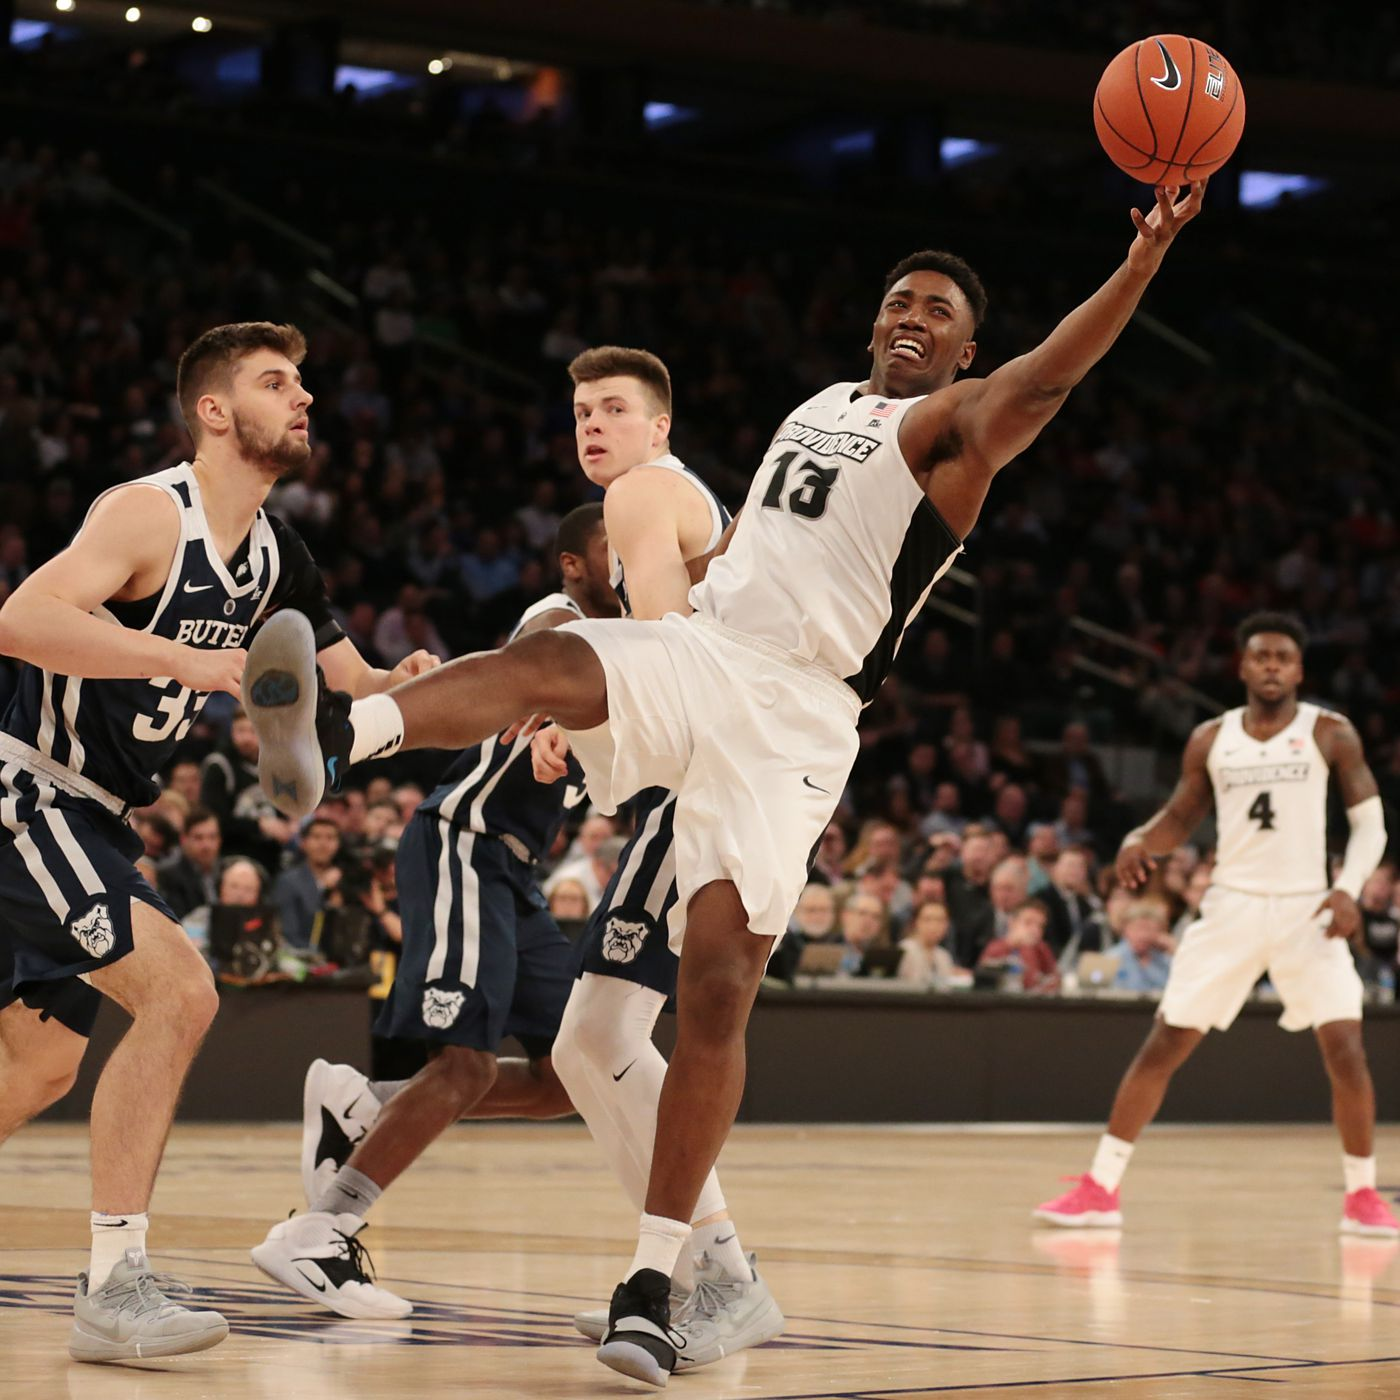 Providence Hosts Butler In Battle Of Big East Undefeateds